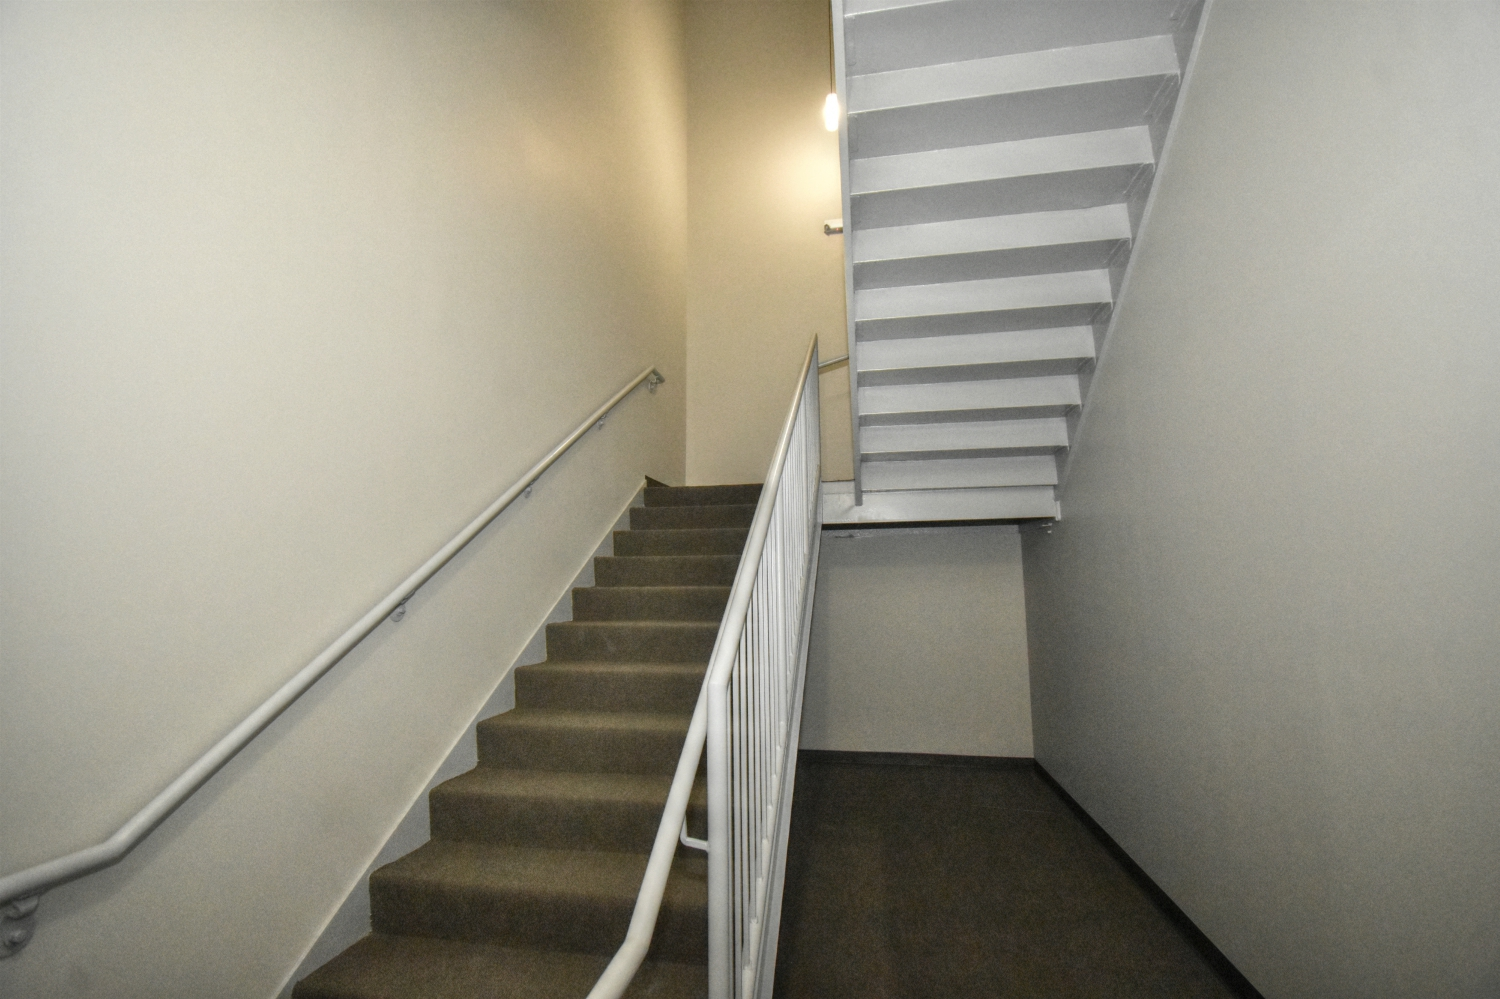 DS-US stairs.jpg